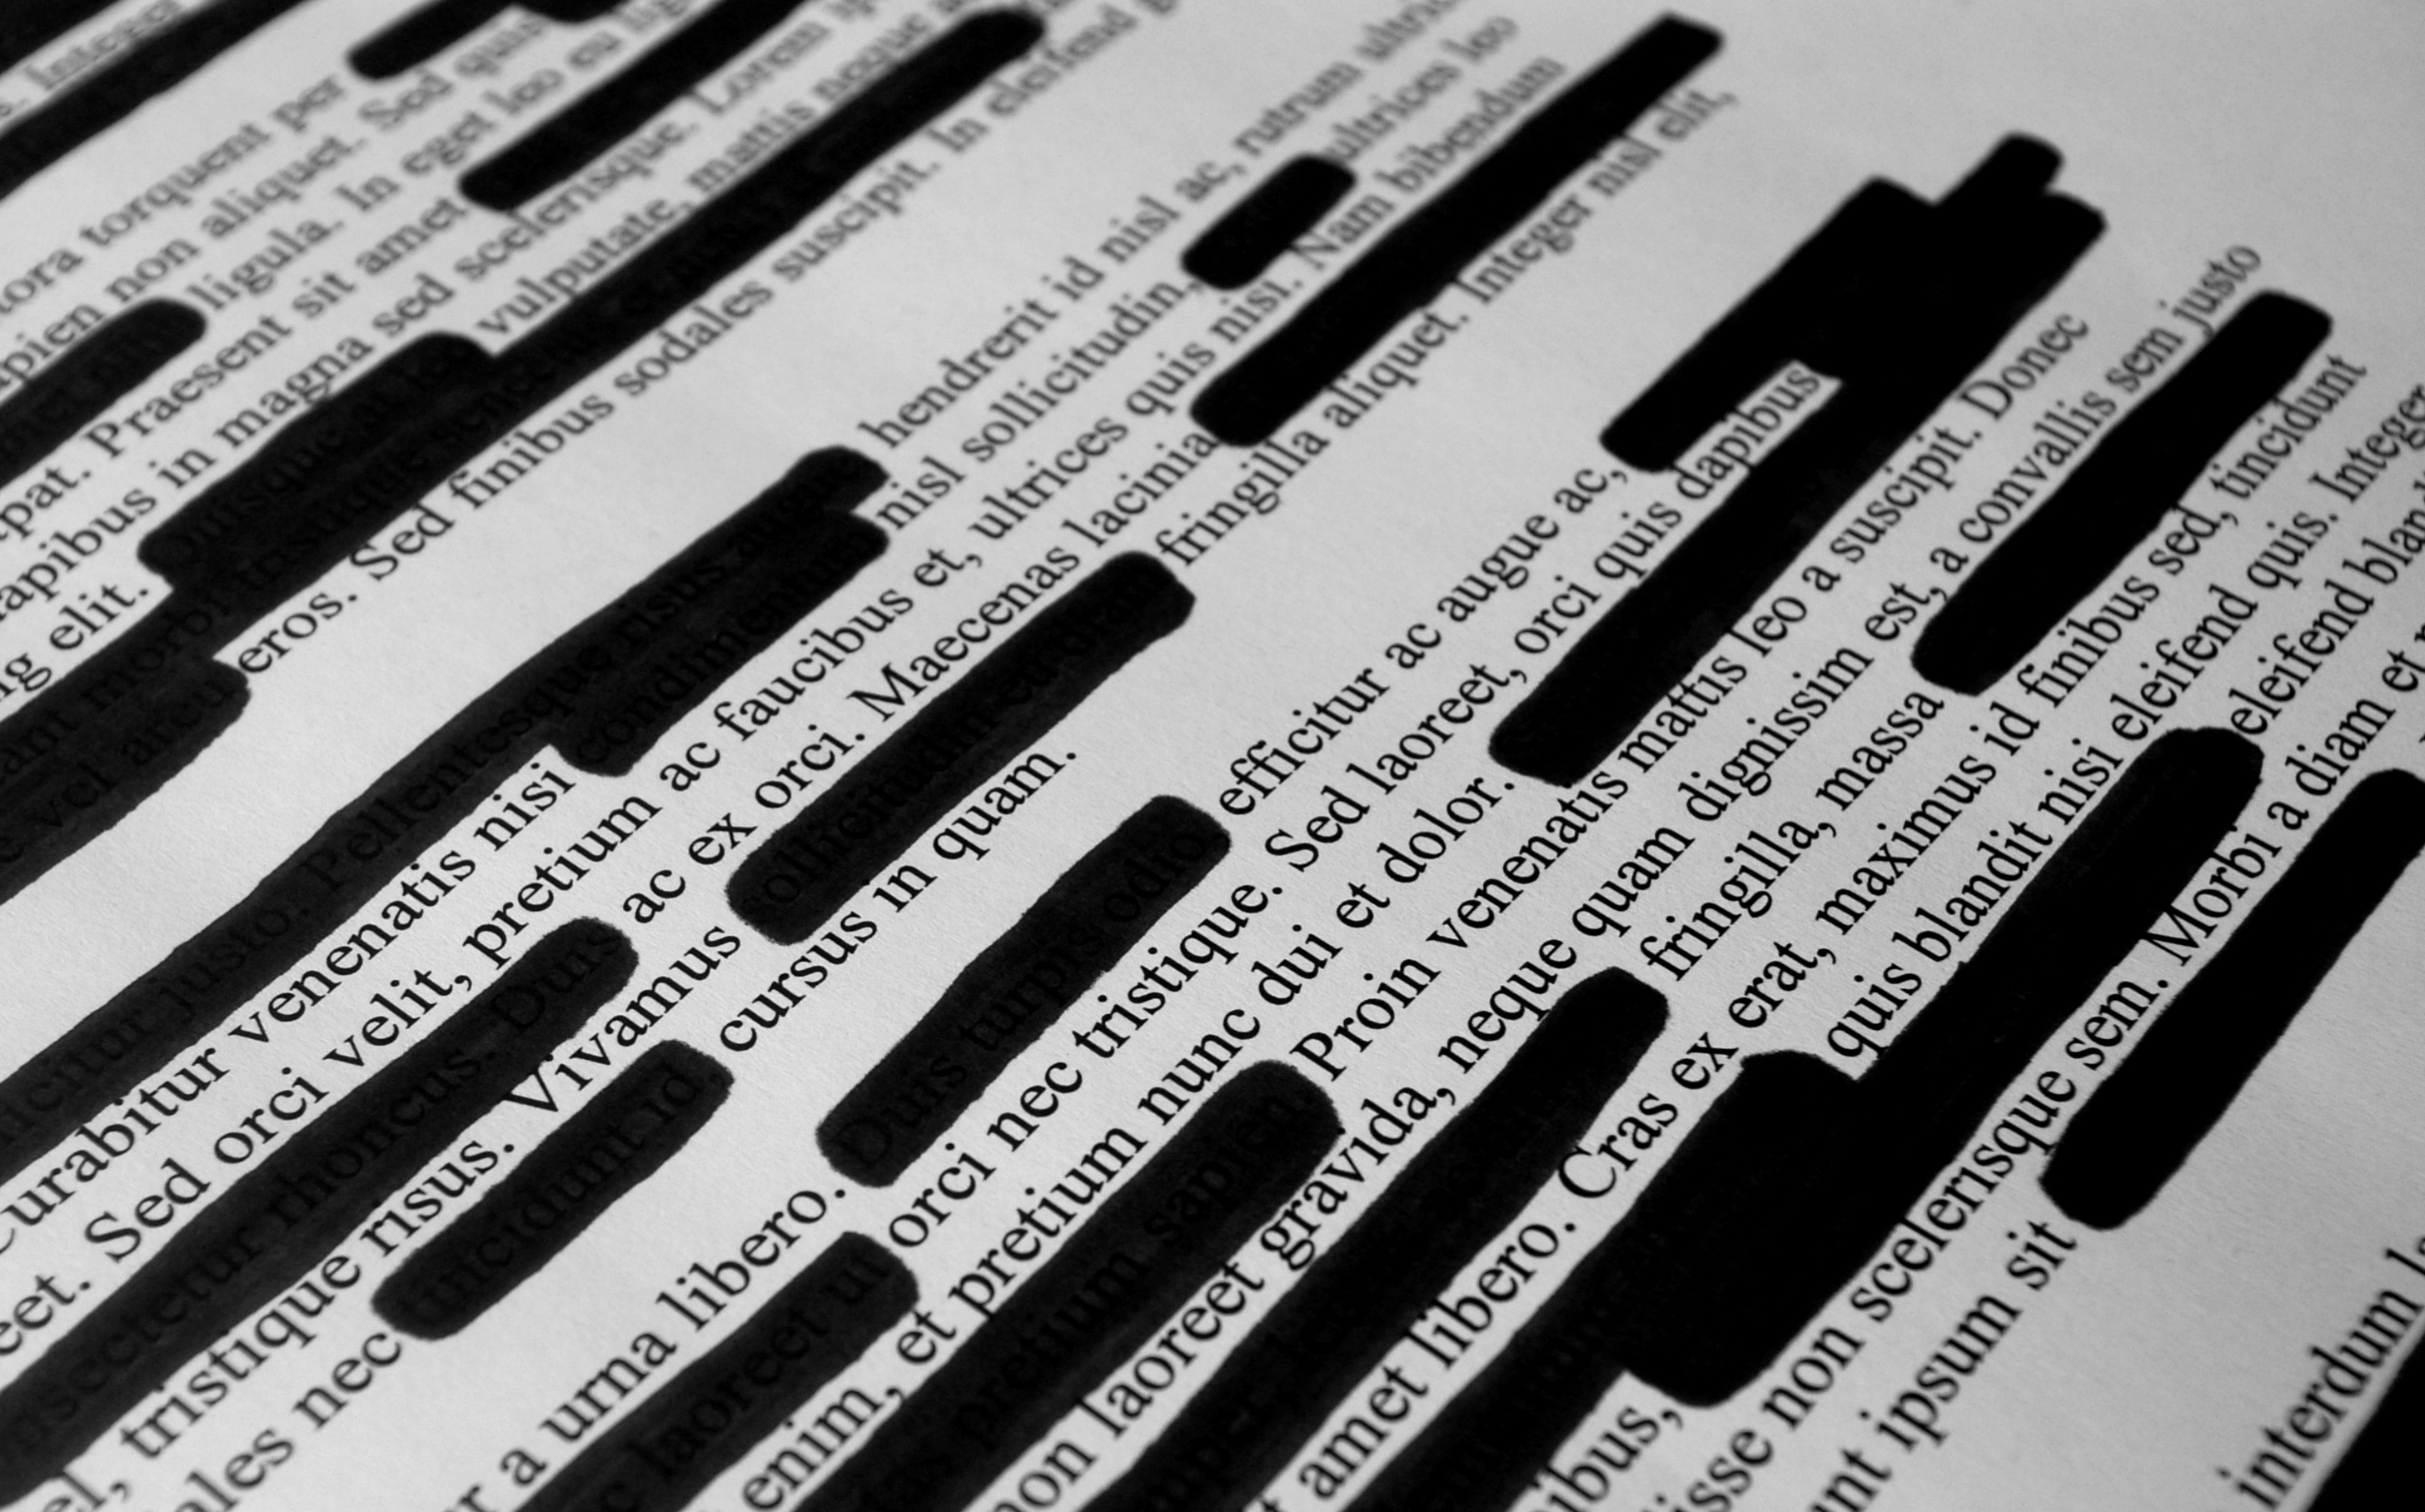 Image of redacted text